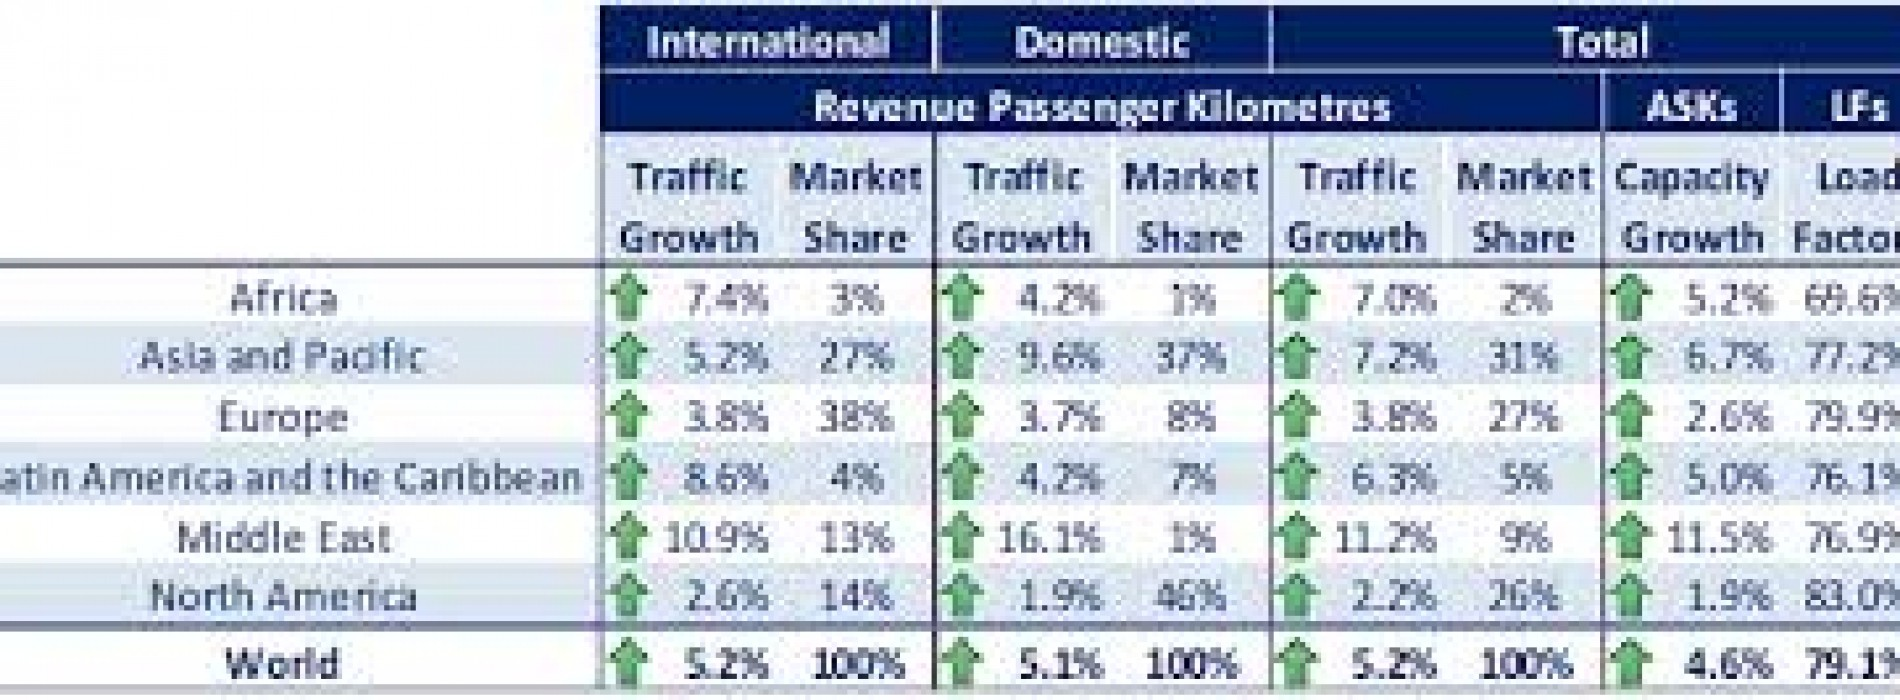 Air passenger demand sees robust growth rates in 2013